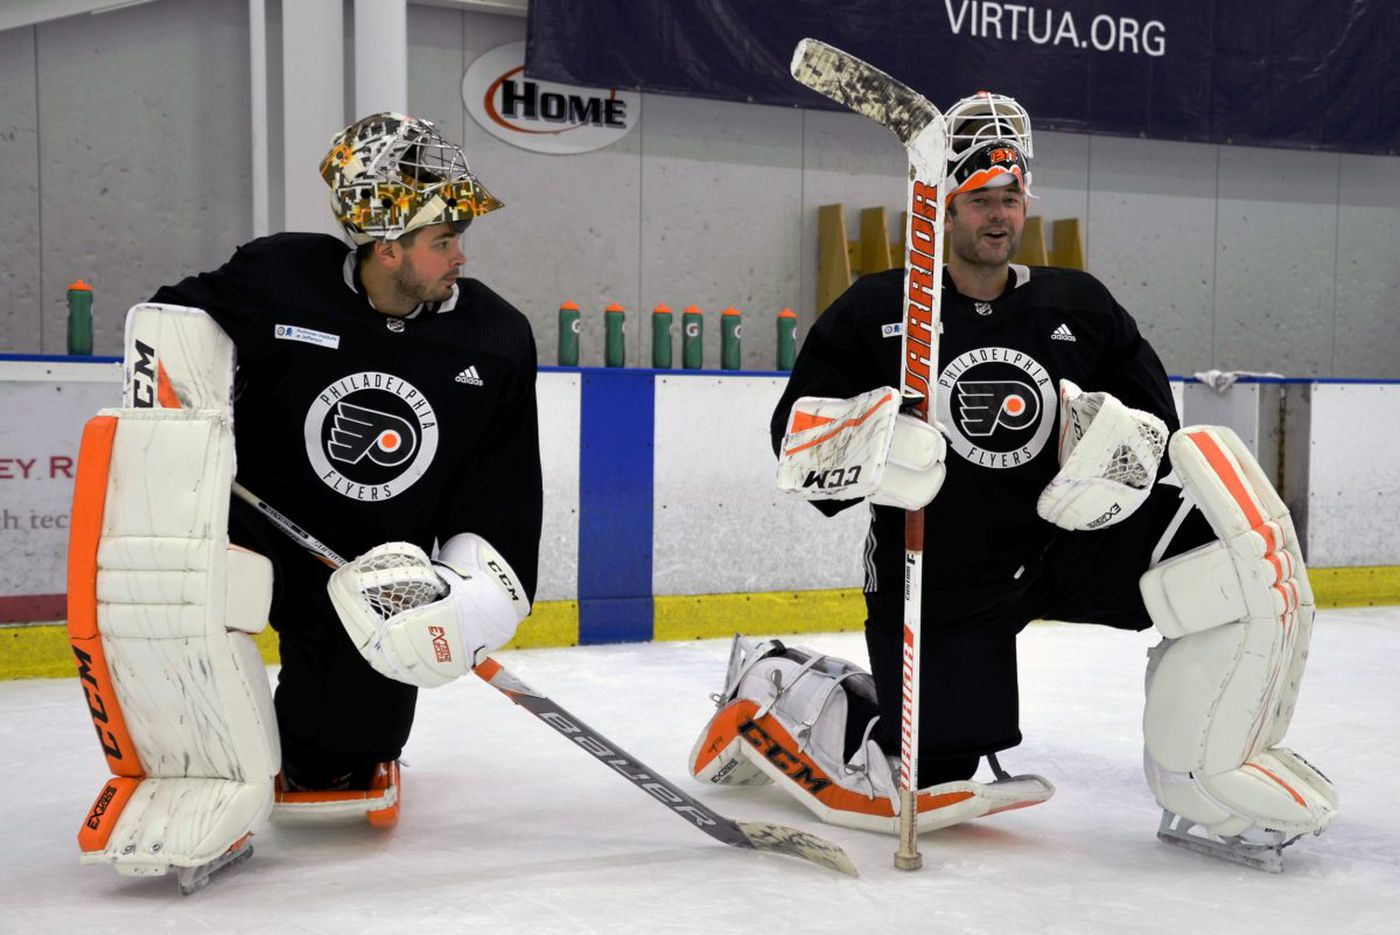 Flyers' two-goalie approach paying dividends